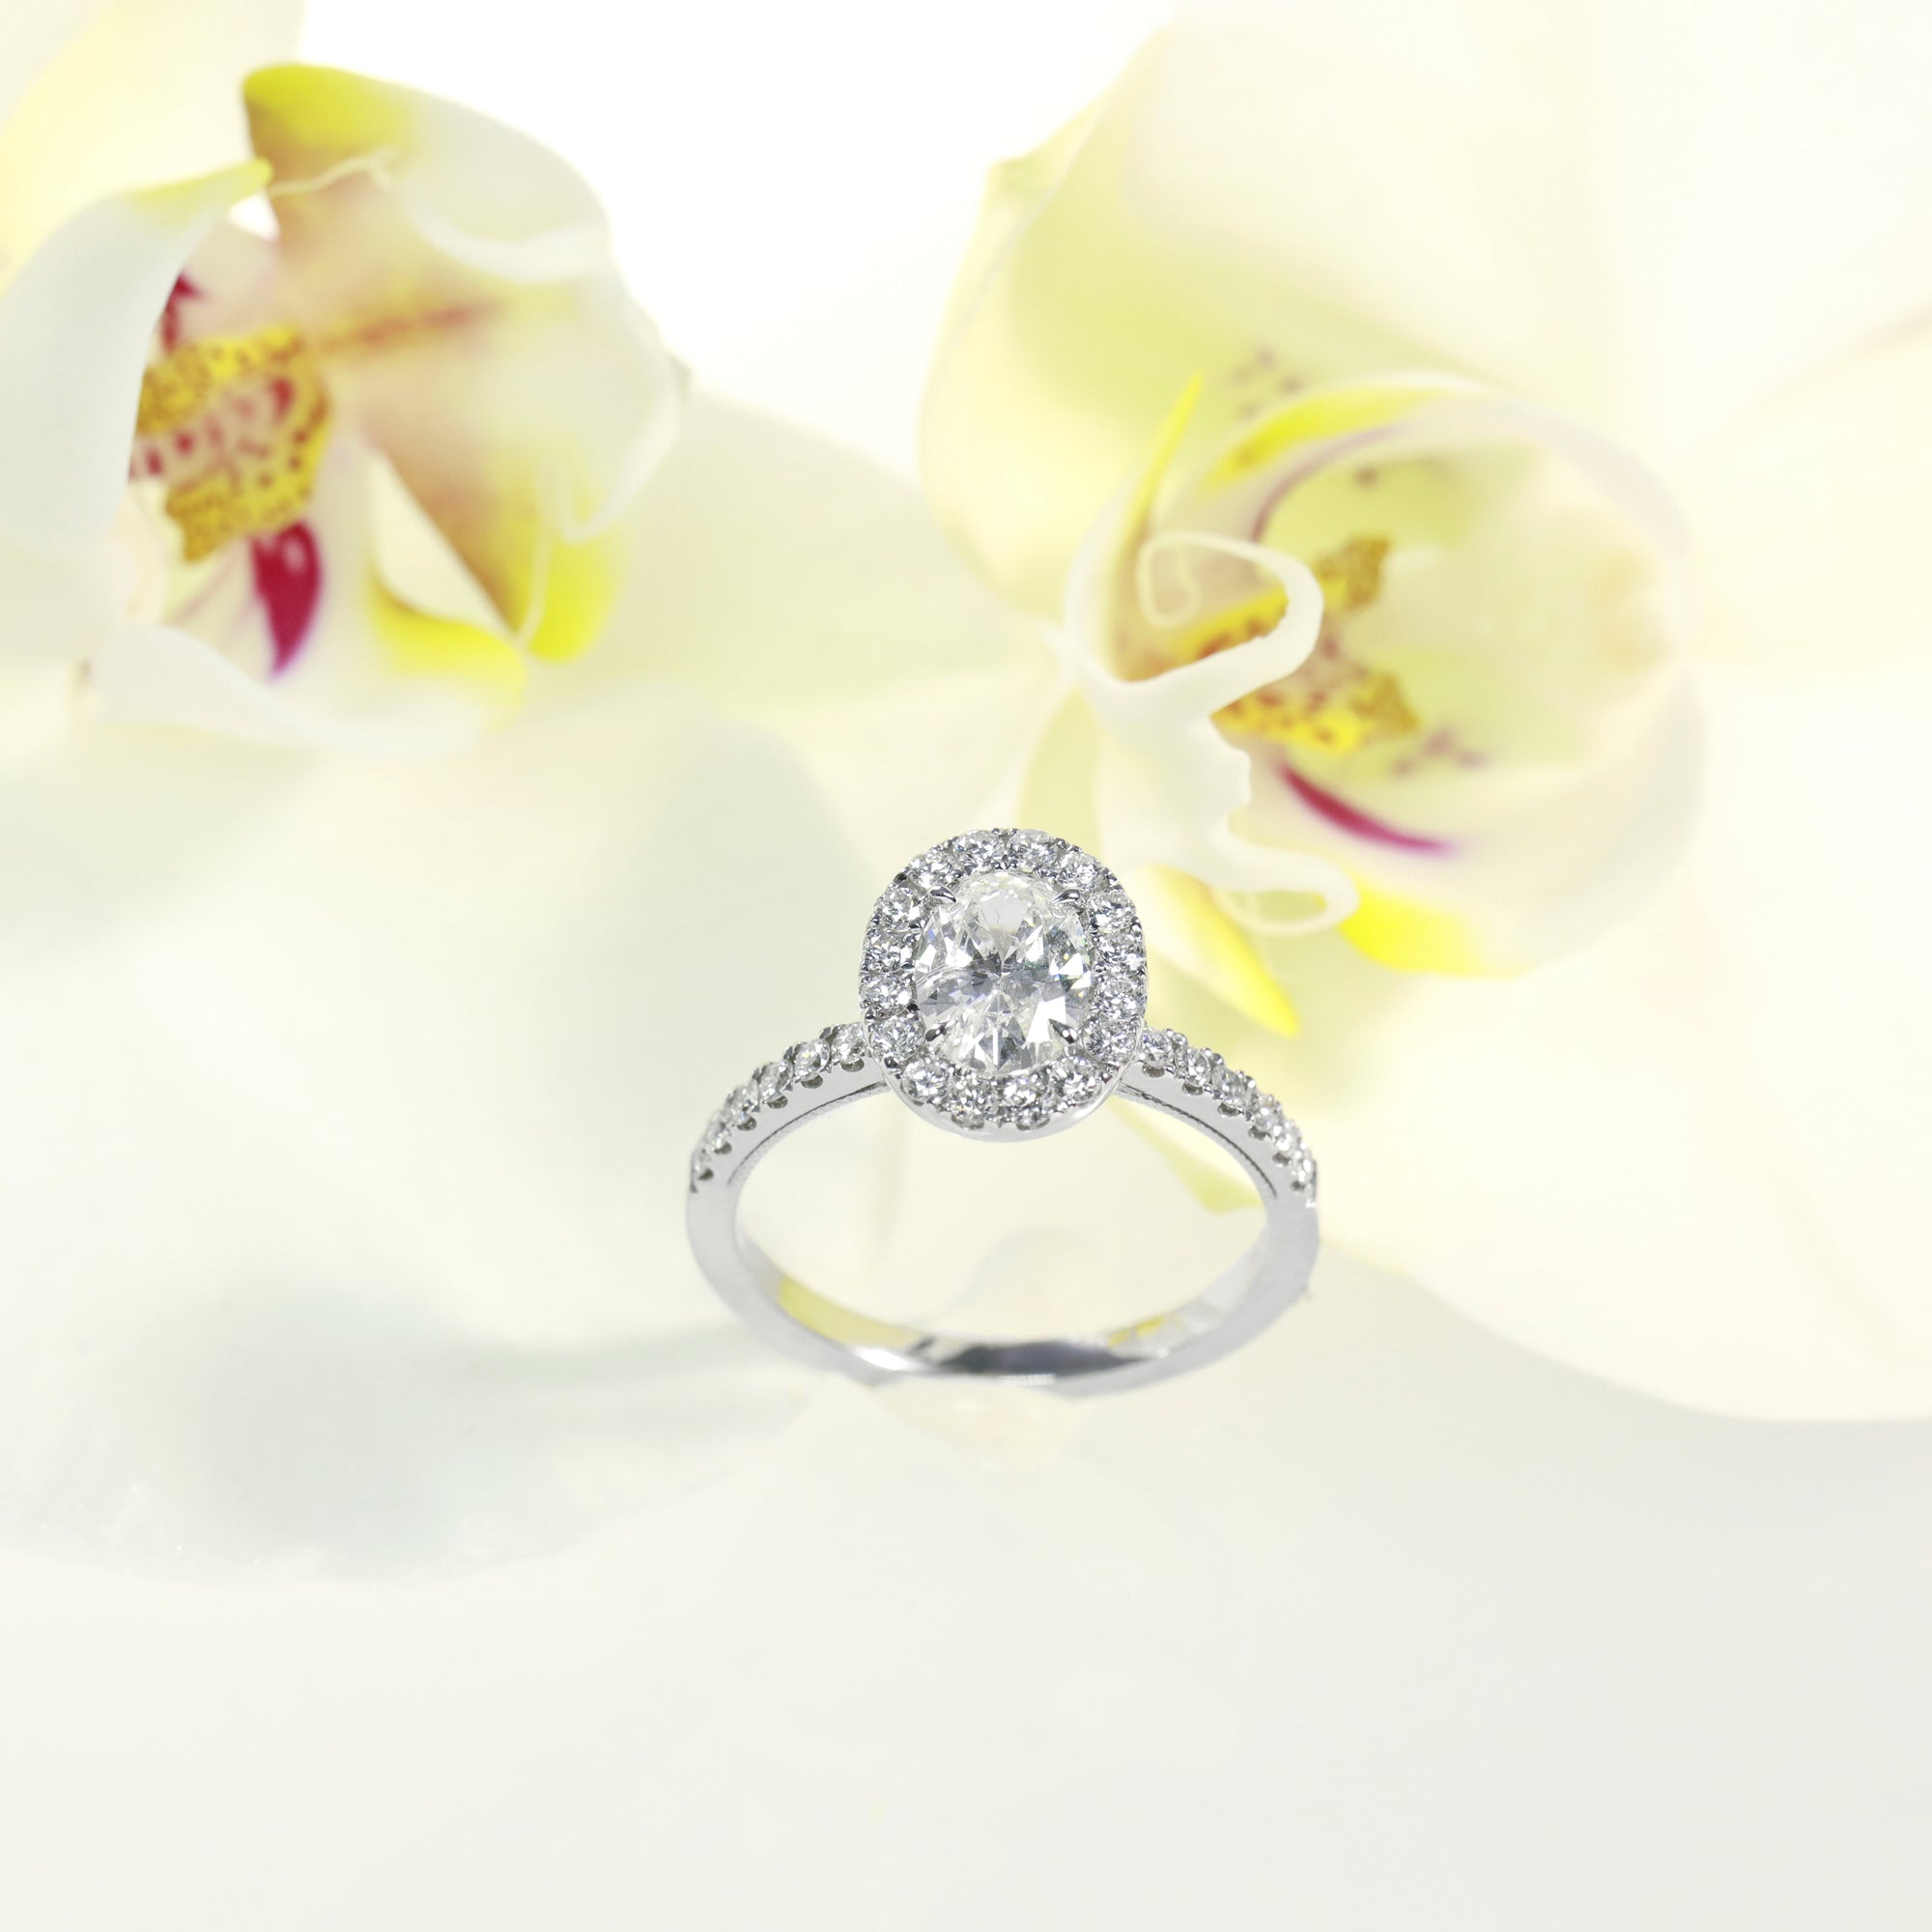 14k white gold diamond engagement ring featuring a 0.84 carat oval diamond center and round brilliant diamond halo and side stones weighing a total of 0.45 carats. Total diamond weight: 1.29ct